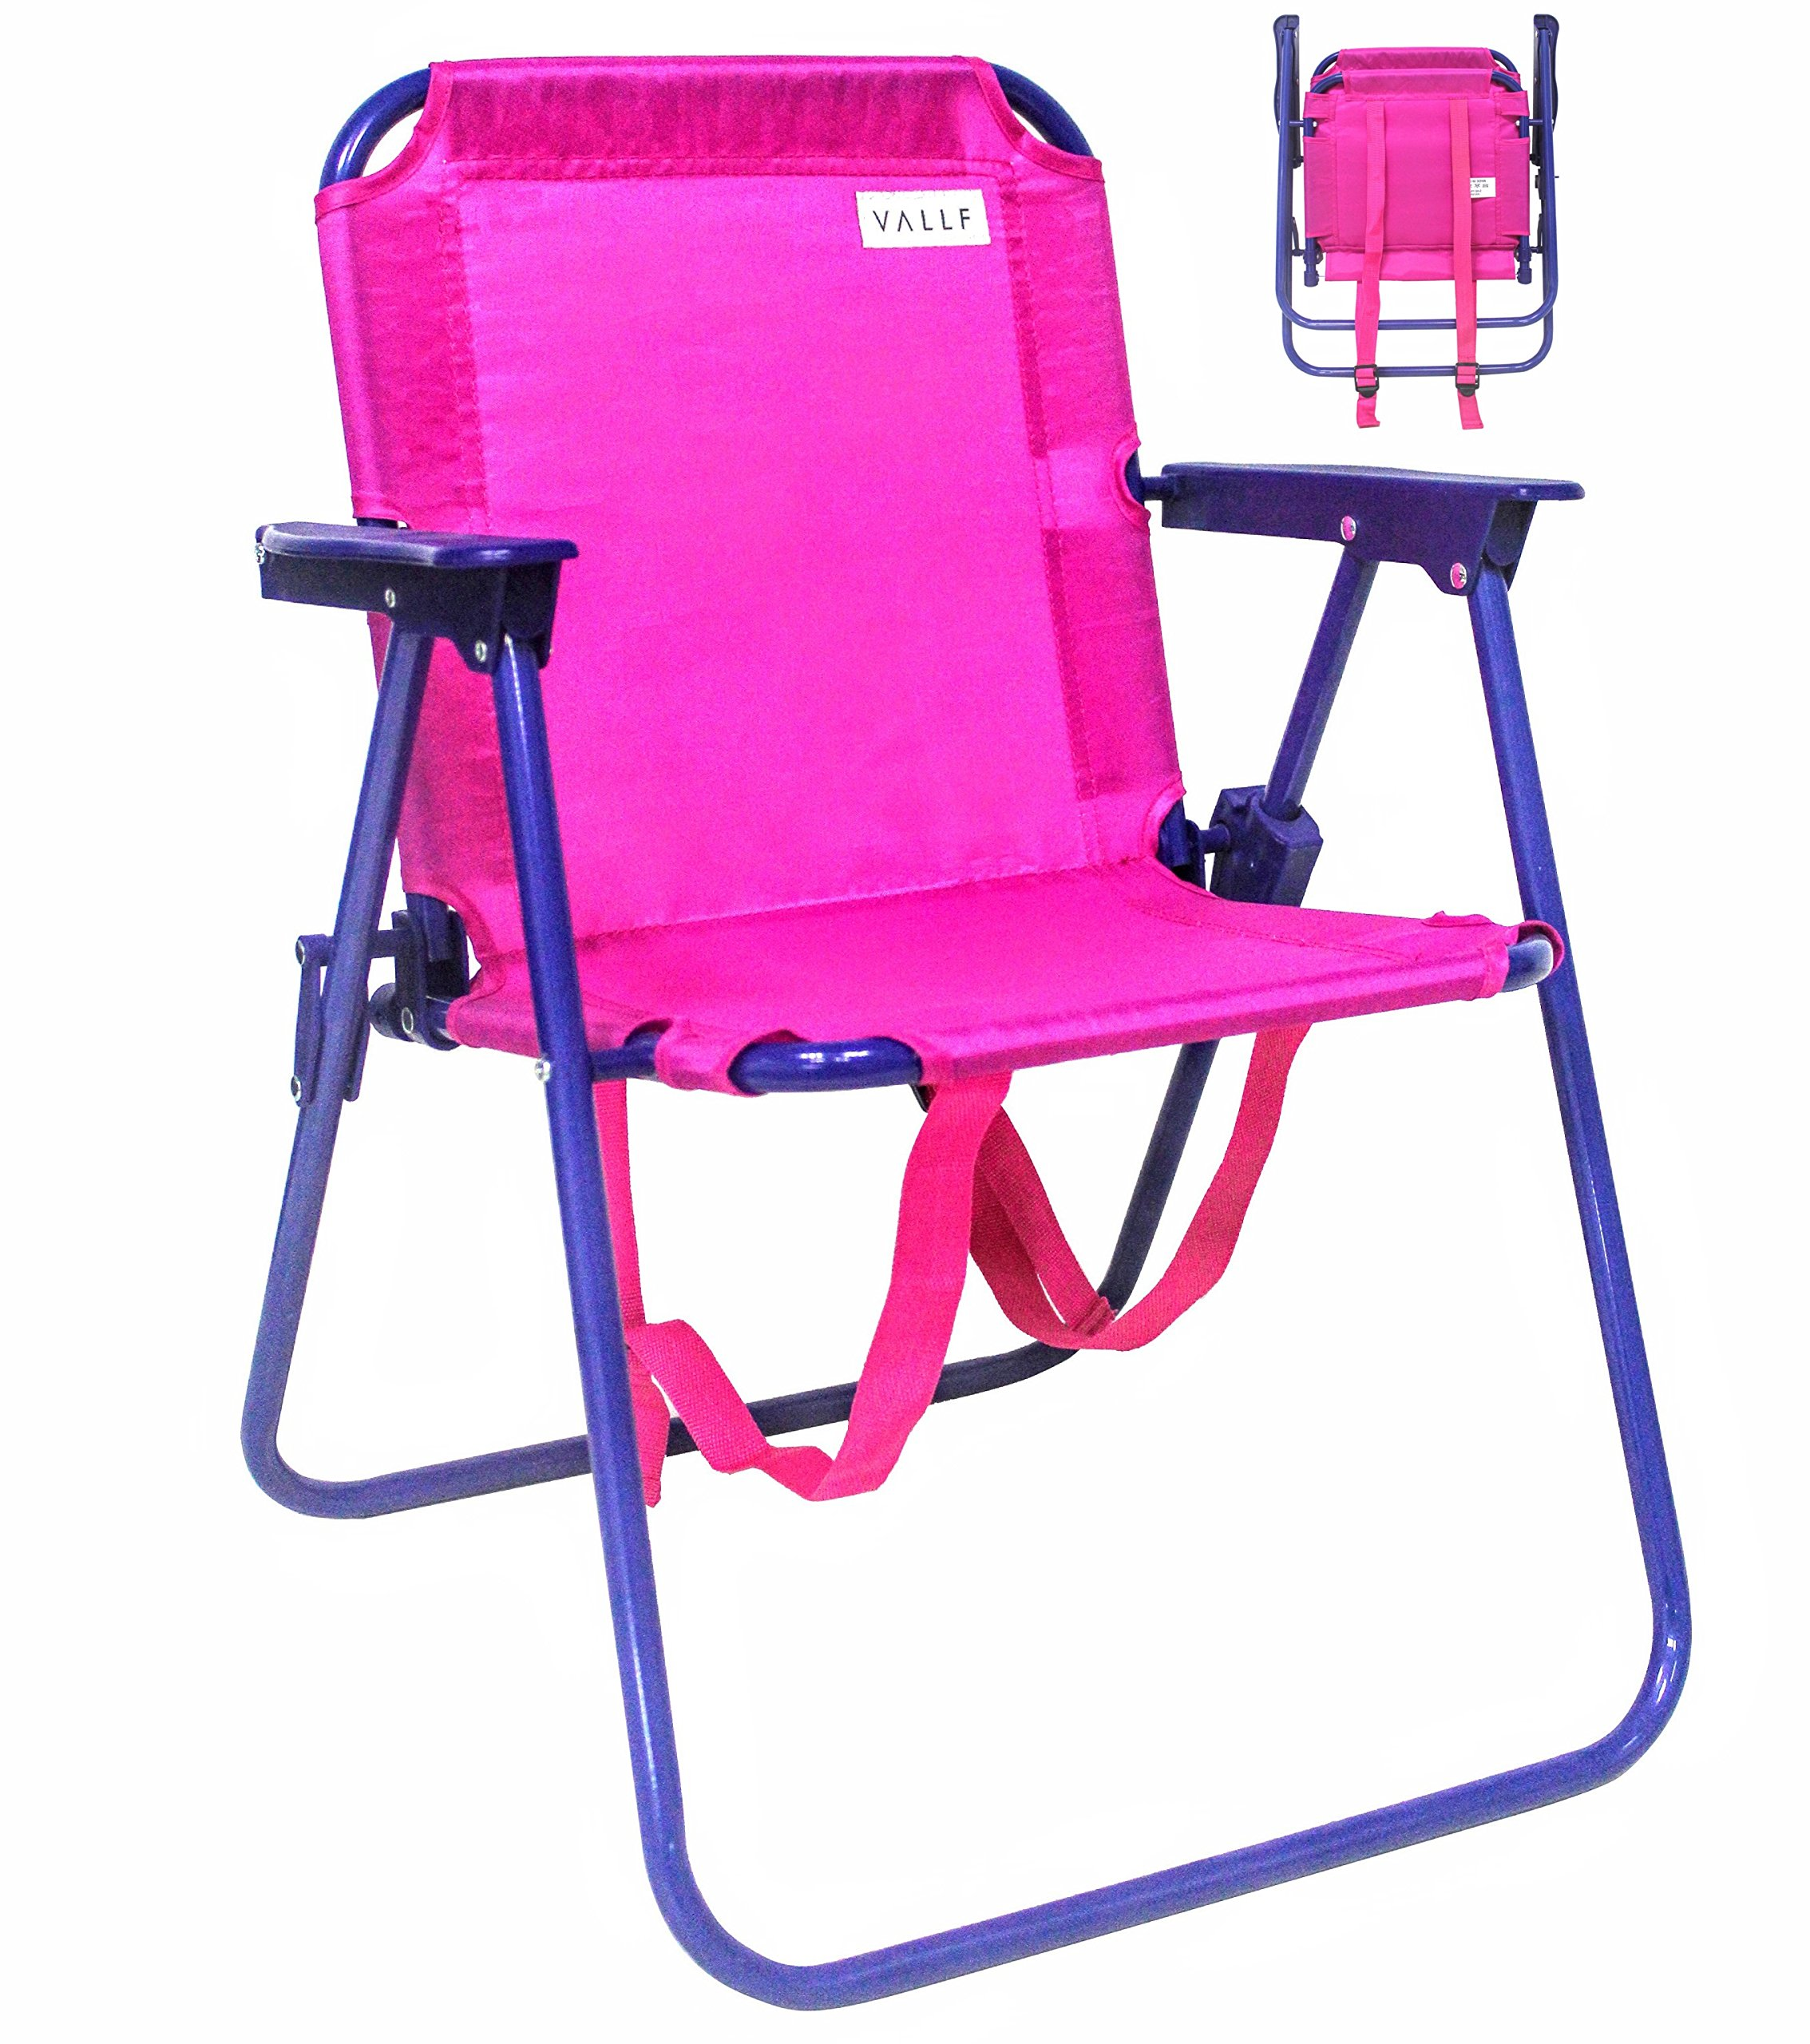 VALLF Kids Beach & Camping Folding Chair with Convenient Backpack Straps and Safety Lock to Avoid Accidents 2~5 Years Old (Pink) by VALLF (Image #1)